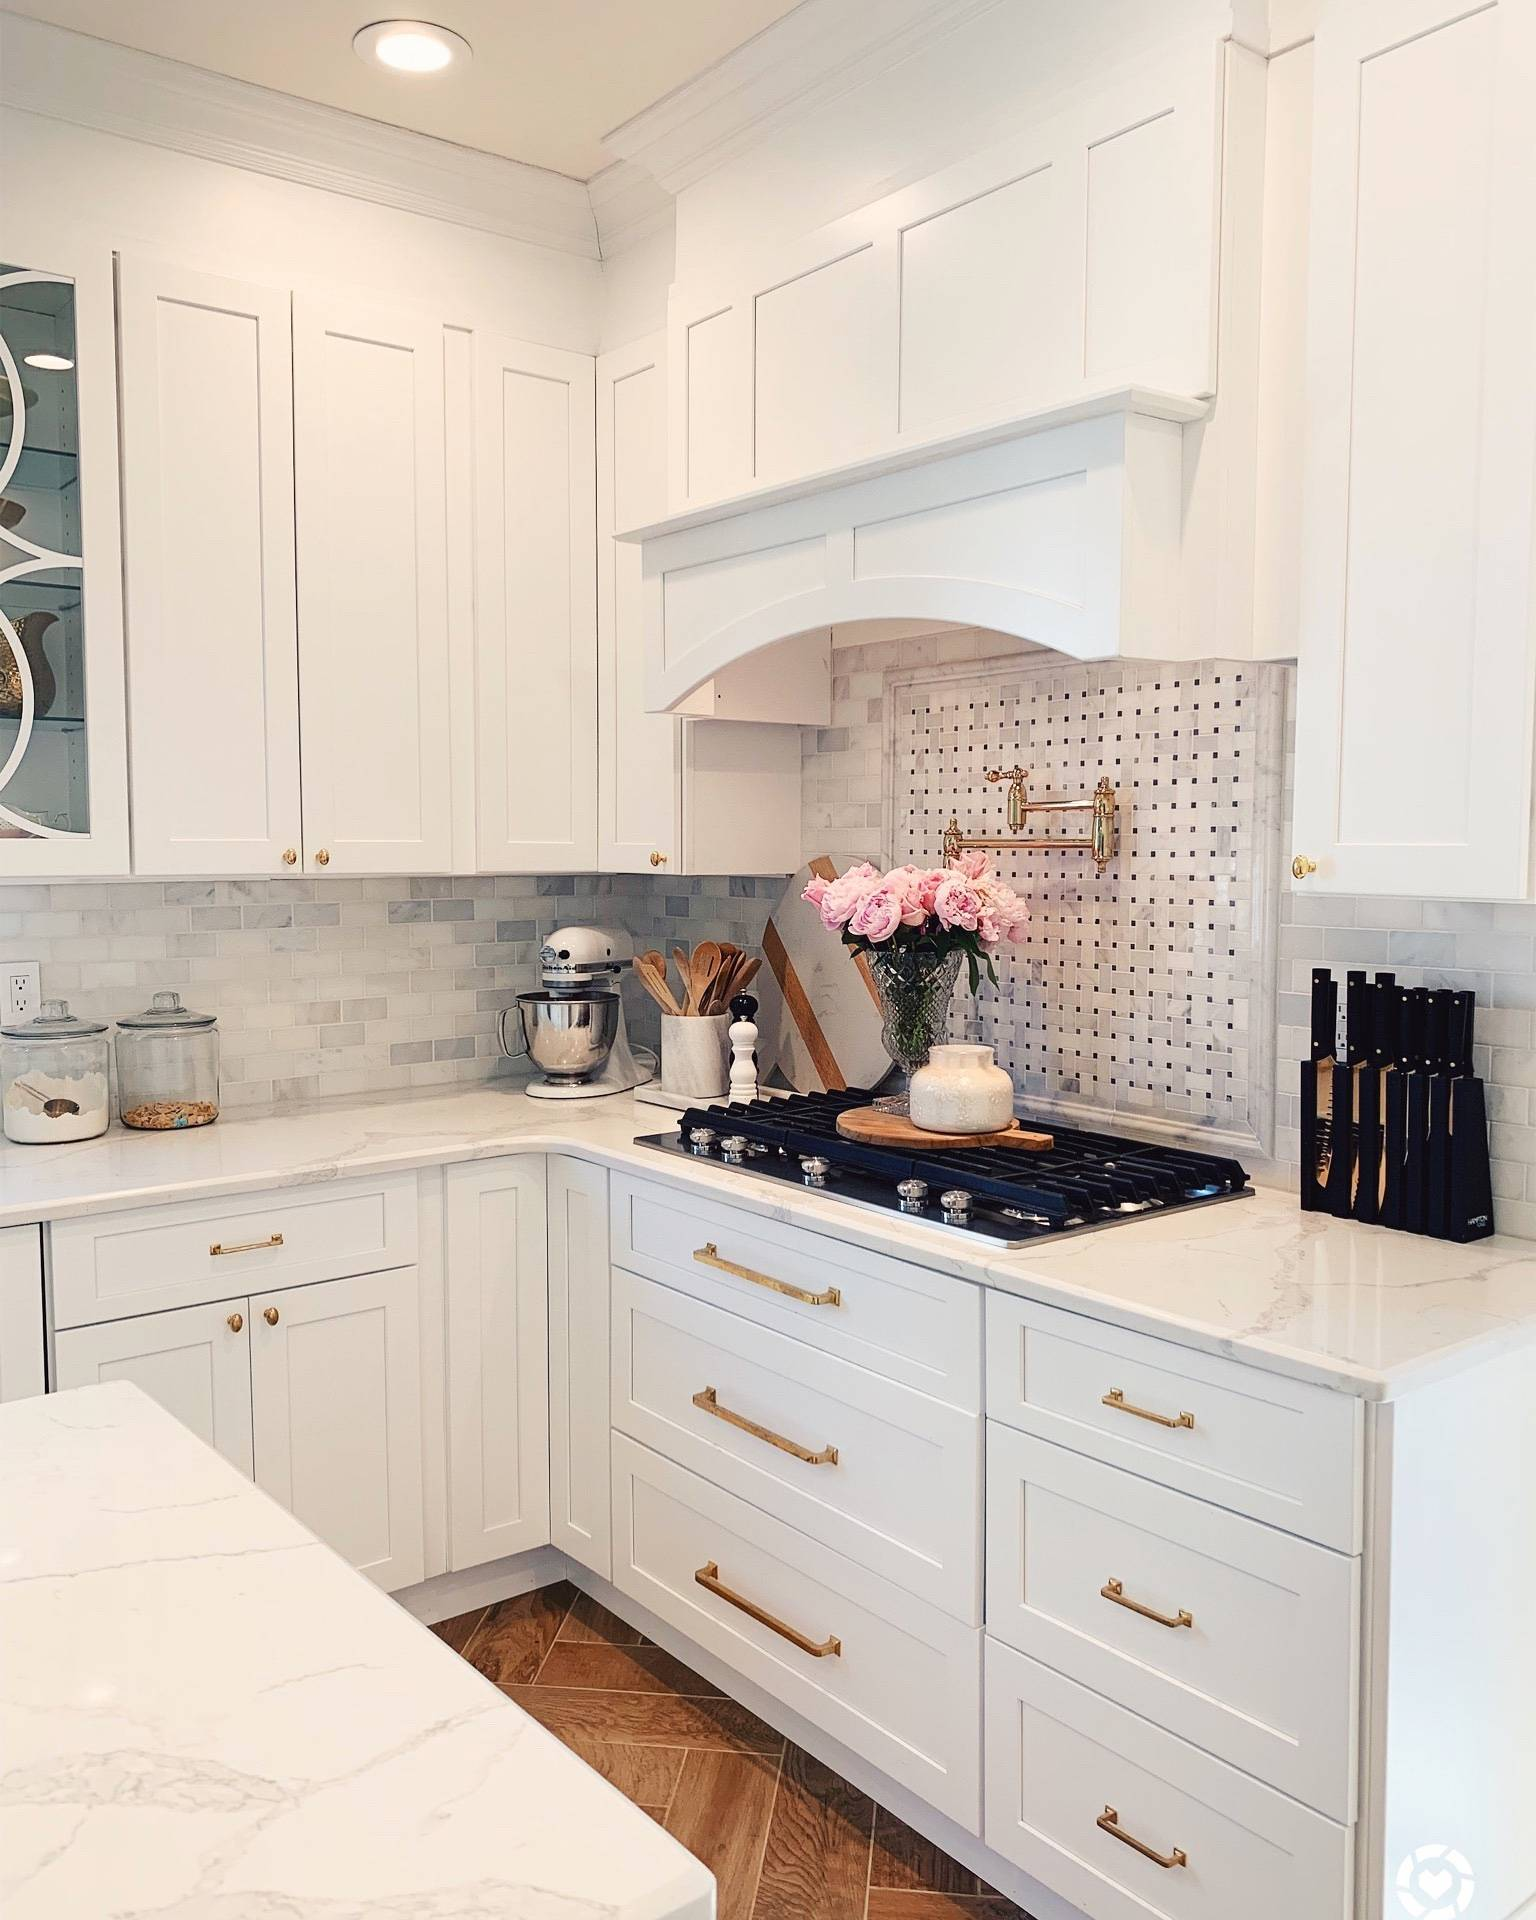 - Our Kitchen Renovation Cost Breakdown + Where To Save & Splurge